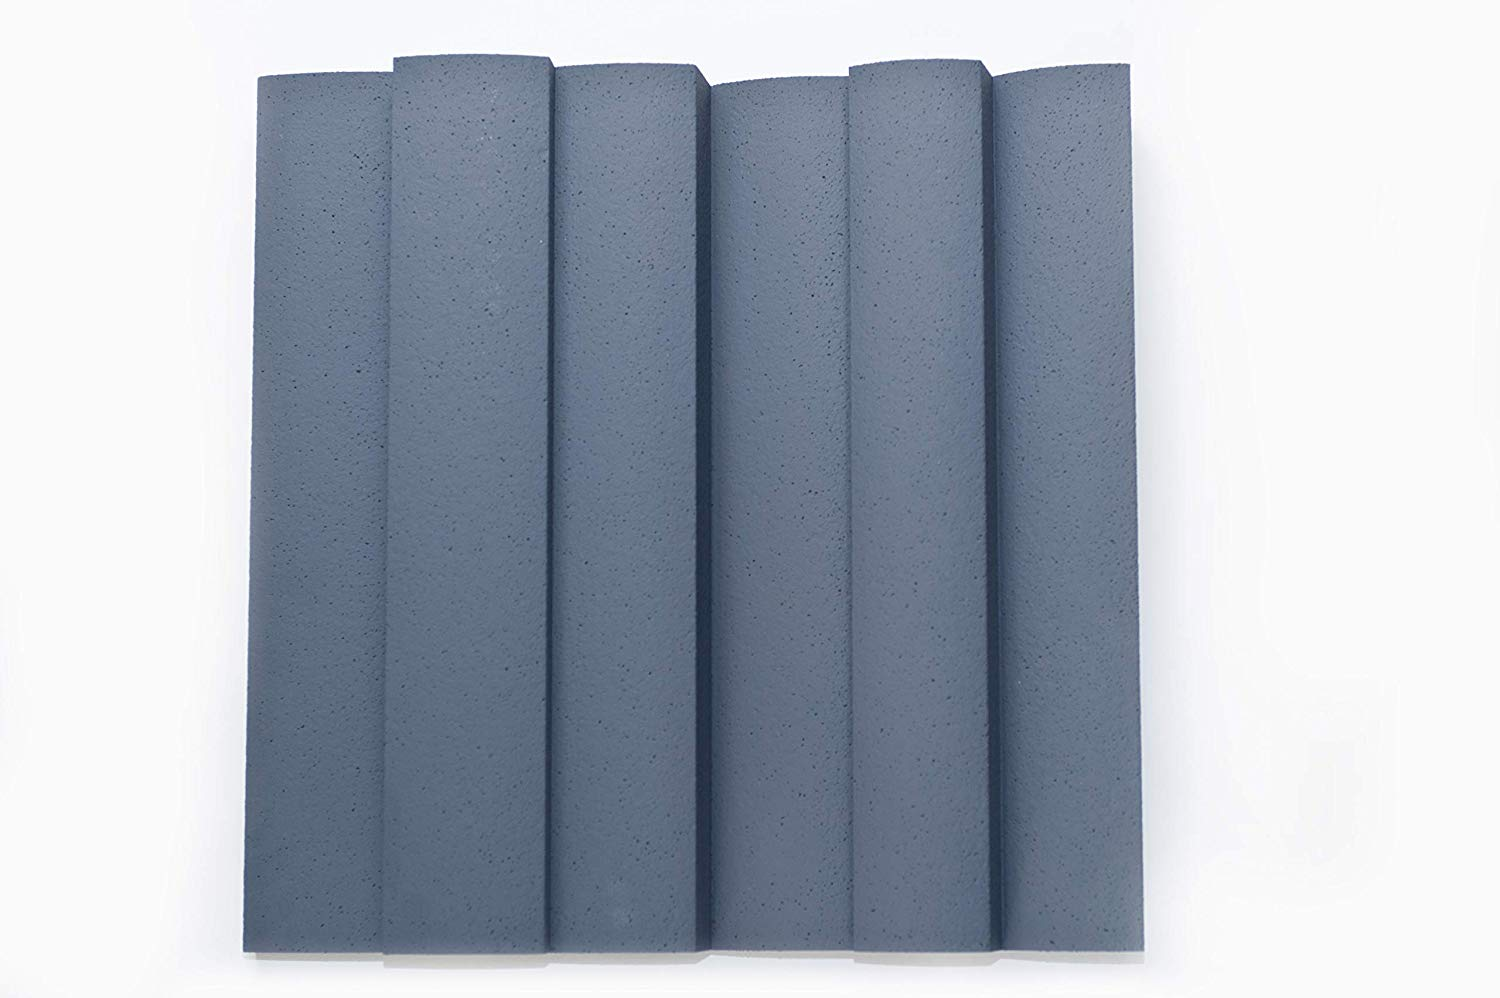 """JOCAVI ATP Wavyfuser Acoustic EPS Diffuser Panels, Recording Studio Tuned Absorber Sound Treatment, Grey, 23.6"""" x 23.6"""" x 5.12"""" (4-Pack)"""